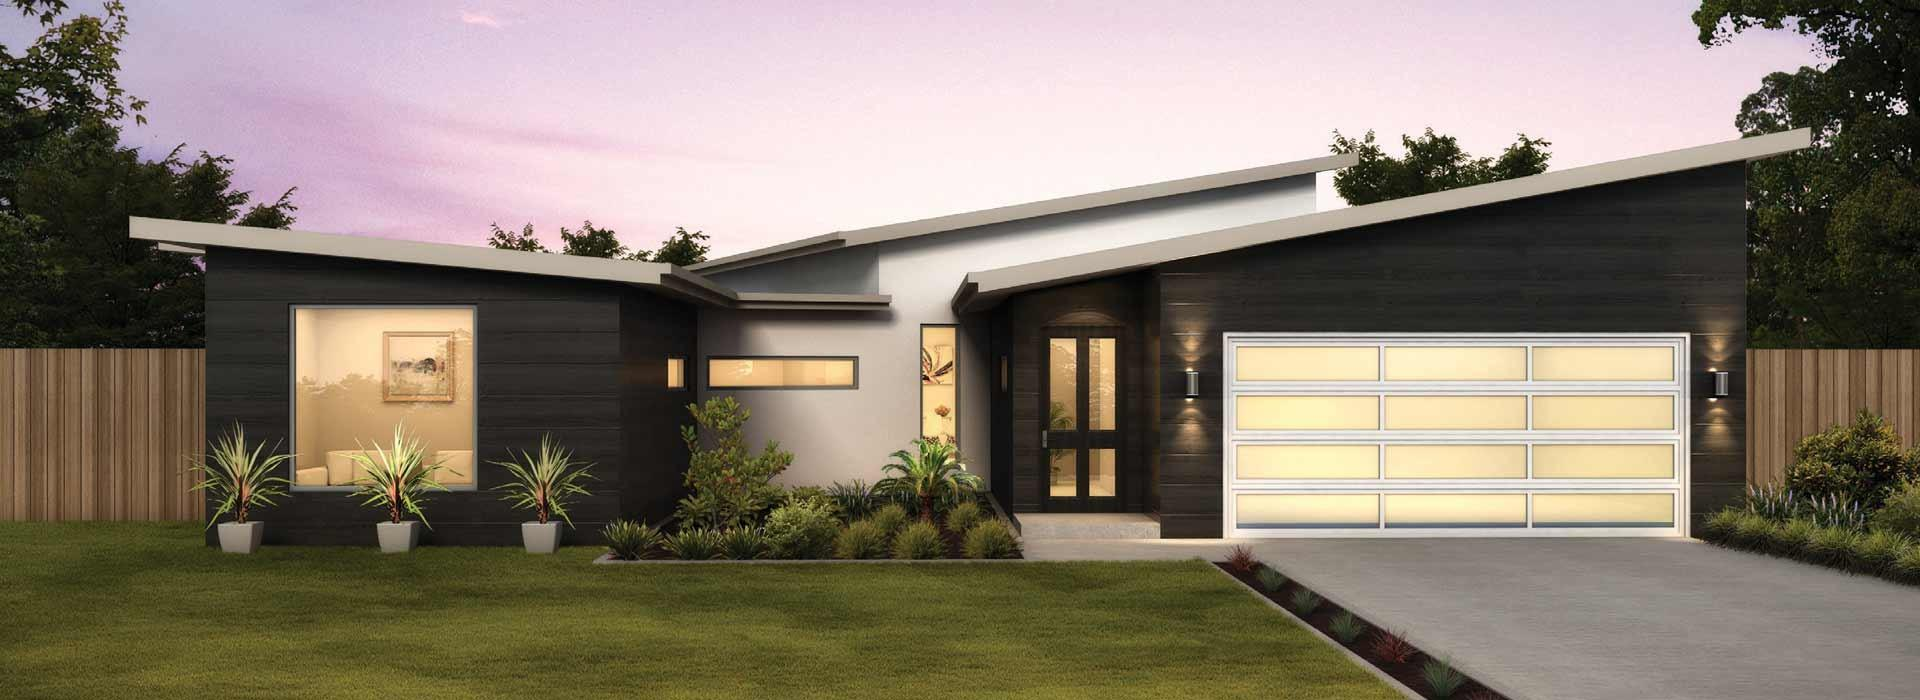 New Home Builders Energy Efficient Homes Green